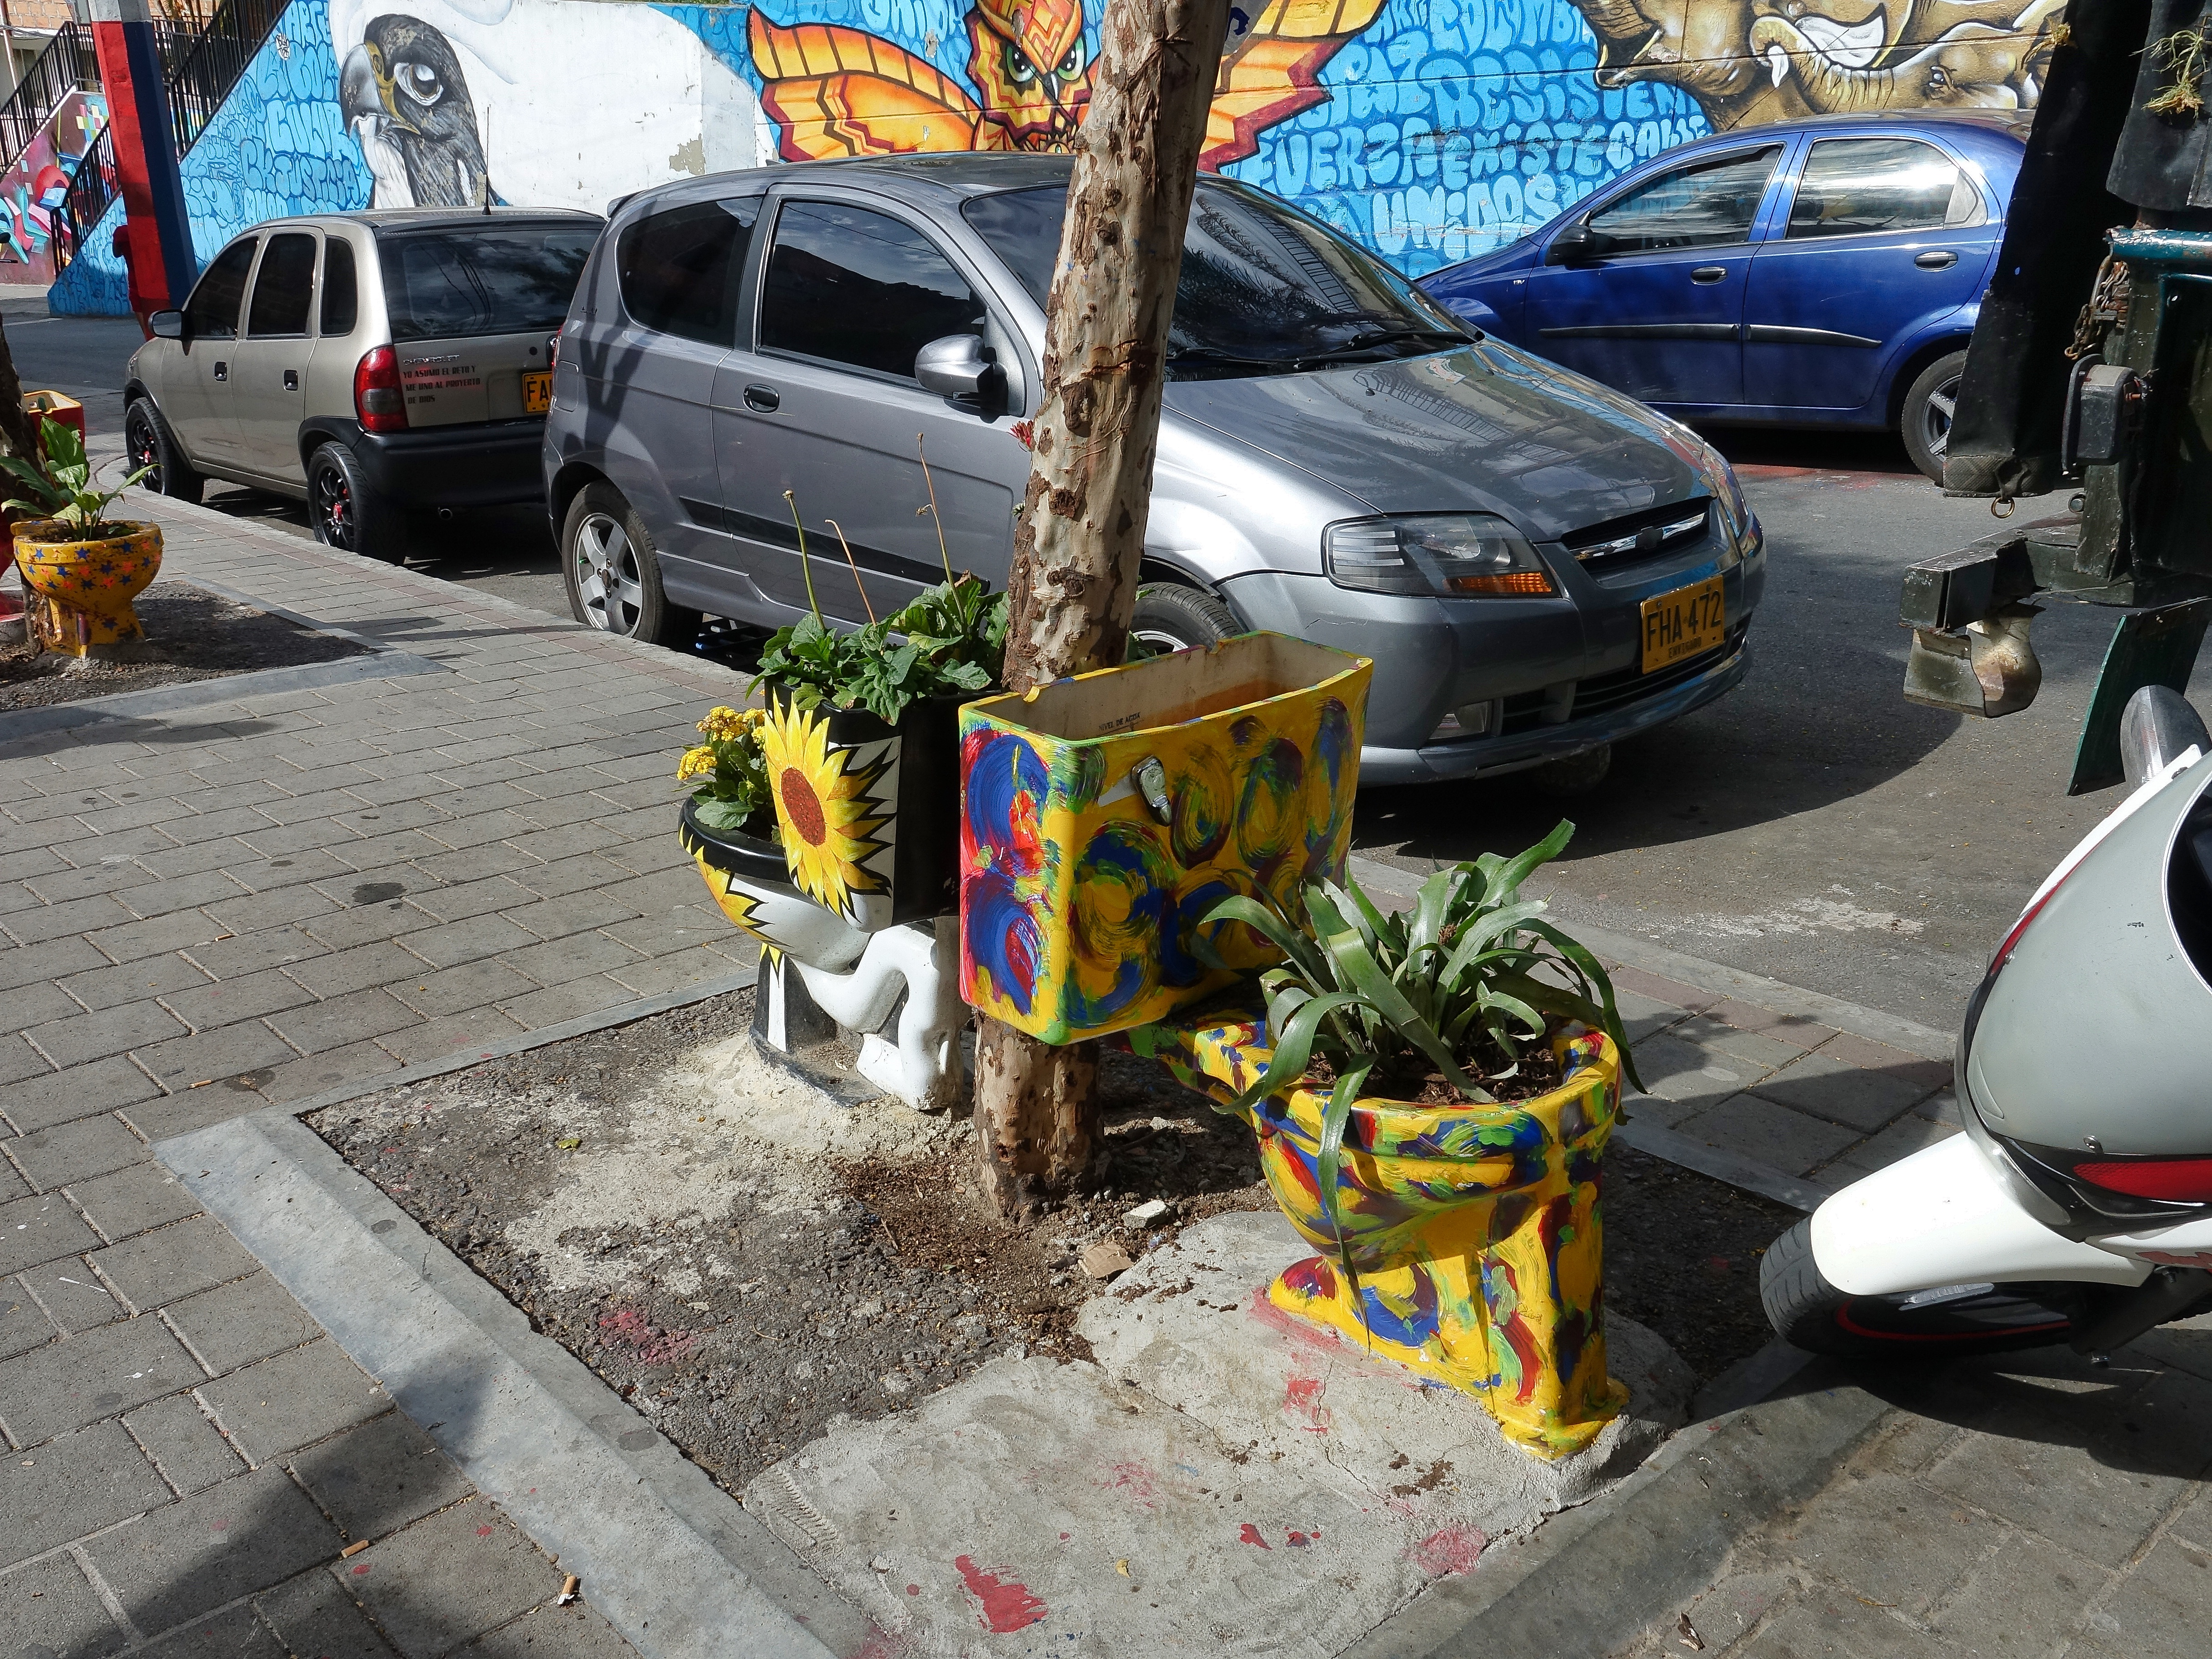 Artistic planters